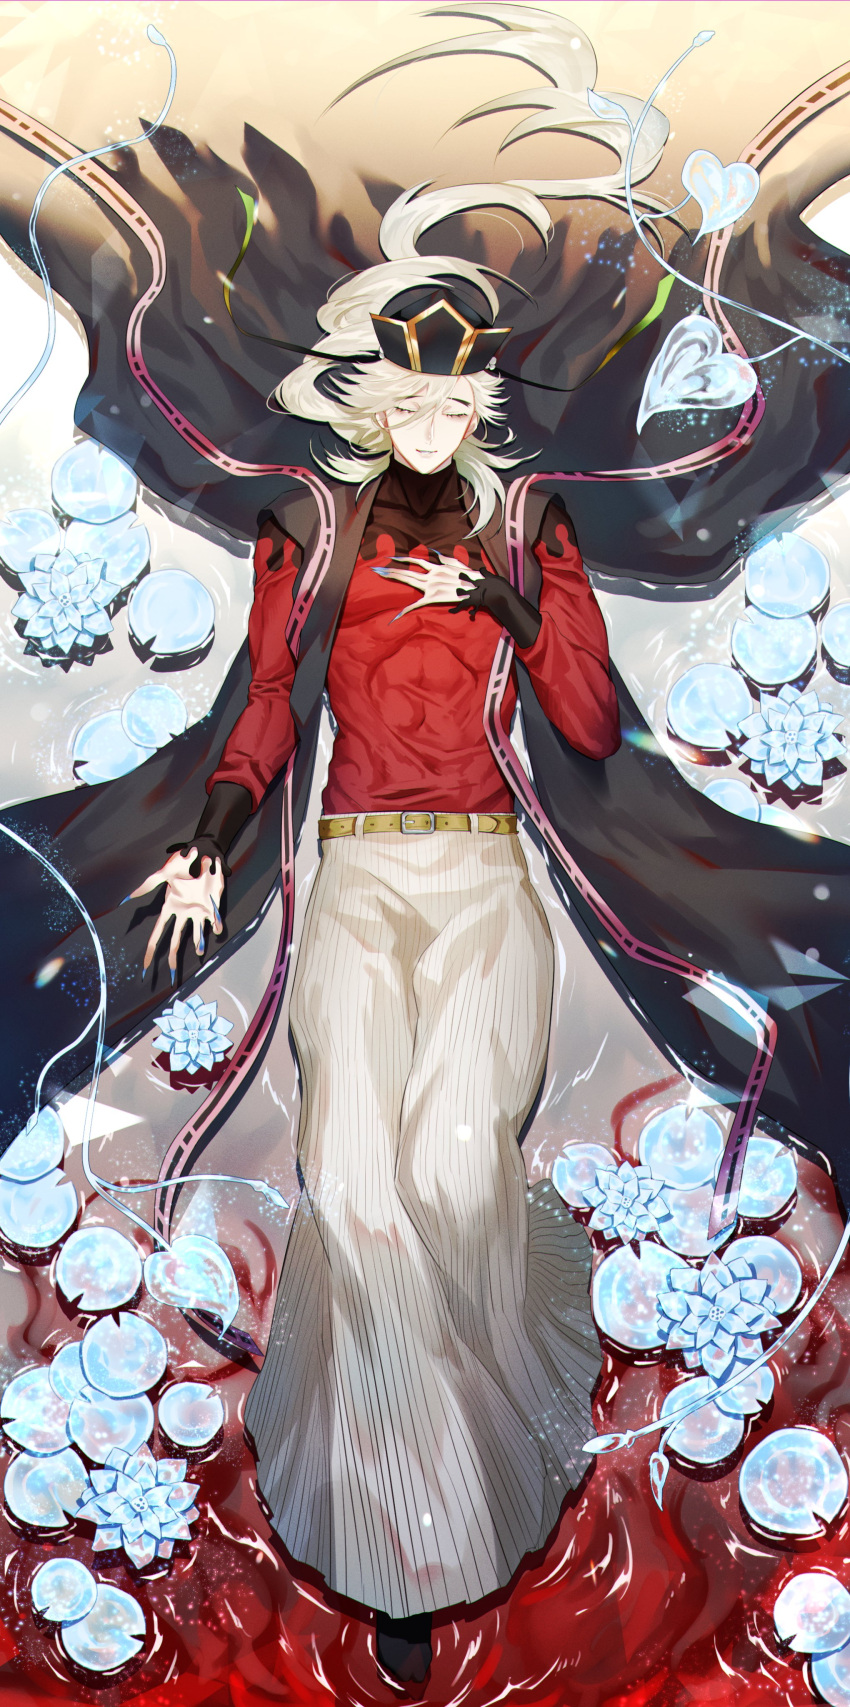 1boy absurdres bangs belt bishounen black_cape black_headwear black_legwear black_sleeves blonde_hair blood blood_in_water blue_nails brown_belt cape closed_eyes collarbone commentary_request demon_boy douma_(kimetsu_no_yaiba) ears eyebrows_visible_through_hair eyelashes fingernails floating floating_hair flower frozen_flower gold_trim gradient_hair gradient_hat hair_between_eyes hair_over_shoulder hakama hand_on_own_chest headdress highres ice japanese_clothes kimetsu_no_yaiba leaf leg_up light light_particles light_rays light_smile lily_pad lins_sana lips long_hair long_sleeves lotus male_focus multicolored multicolored_clothes multicolored_hair open_hand parted_bangs pectorals petals petals_on_liquid relaxed shiny shiny_hair sleeves_past_elbows solo splatter_print sunbeam sunlight tabard tabi tall tassel thick_eyebrows thick_thighs thighs tight_top toned toned_male traditional_clothes very_long_fingernails wavy_hair white_hakama wide_hips